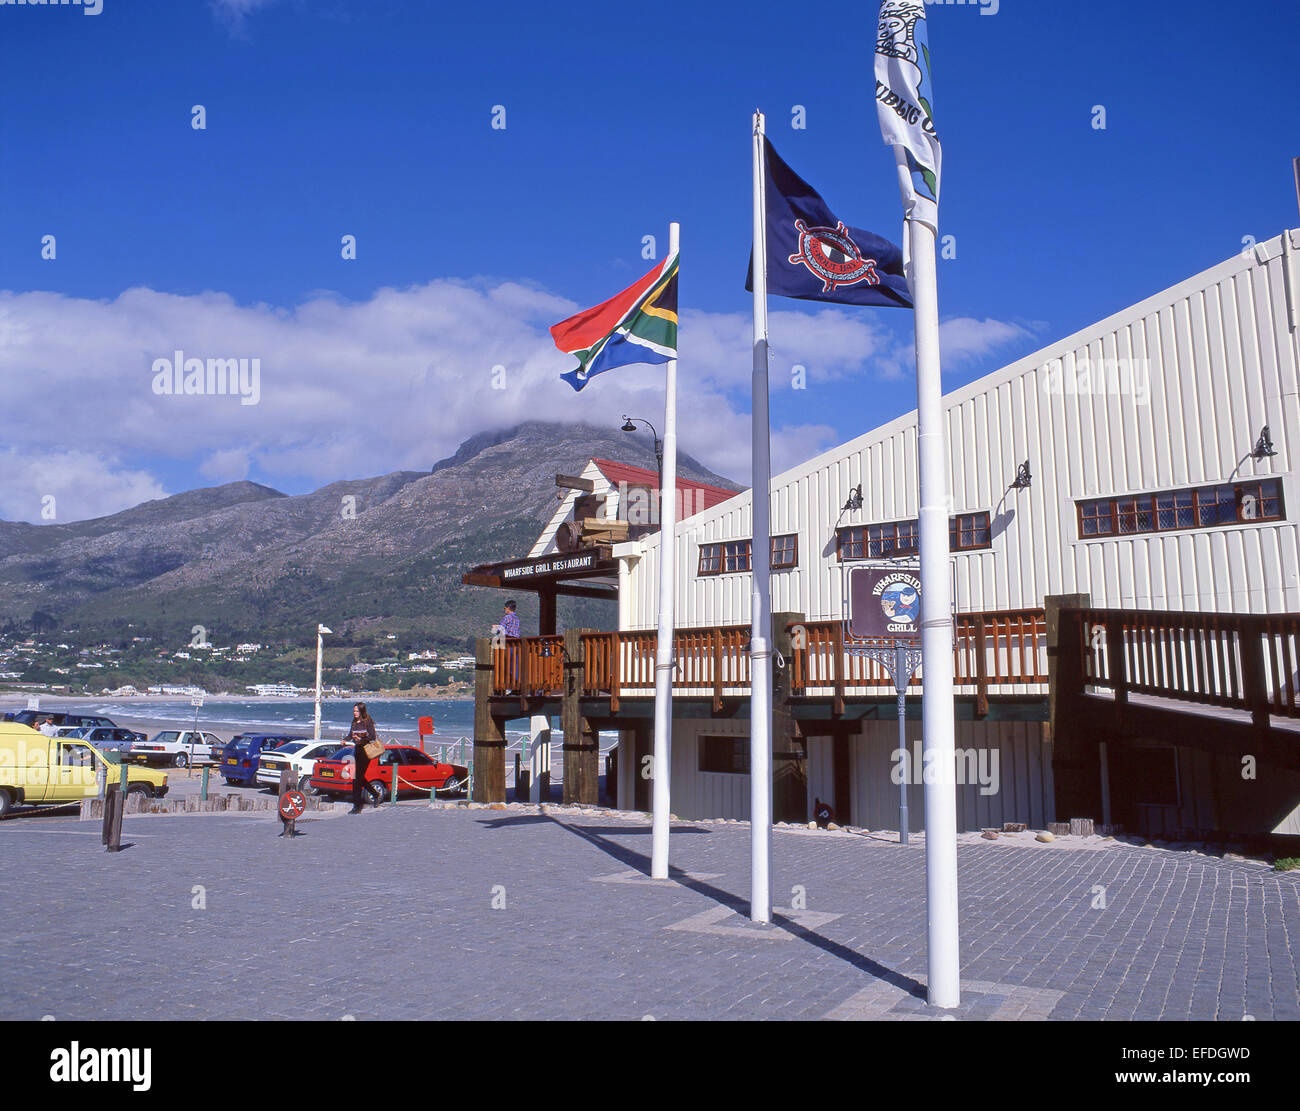 Wharfside Grill Restaurant, Hout Bay, Western Cape Province, Republic of South Africa - Stock Image